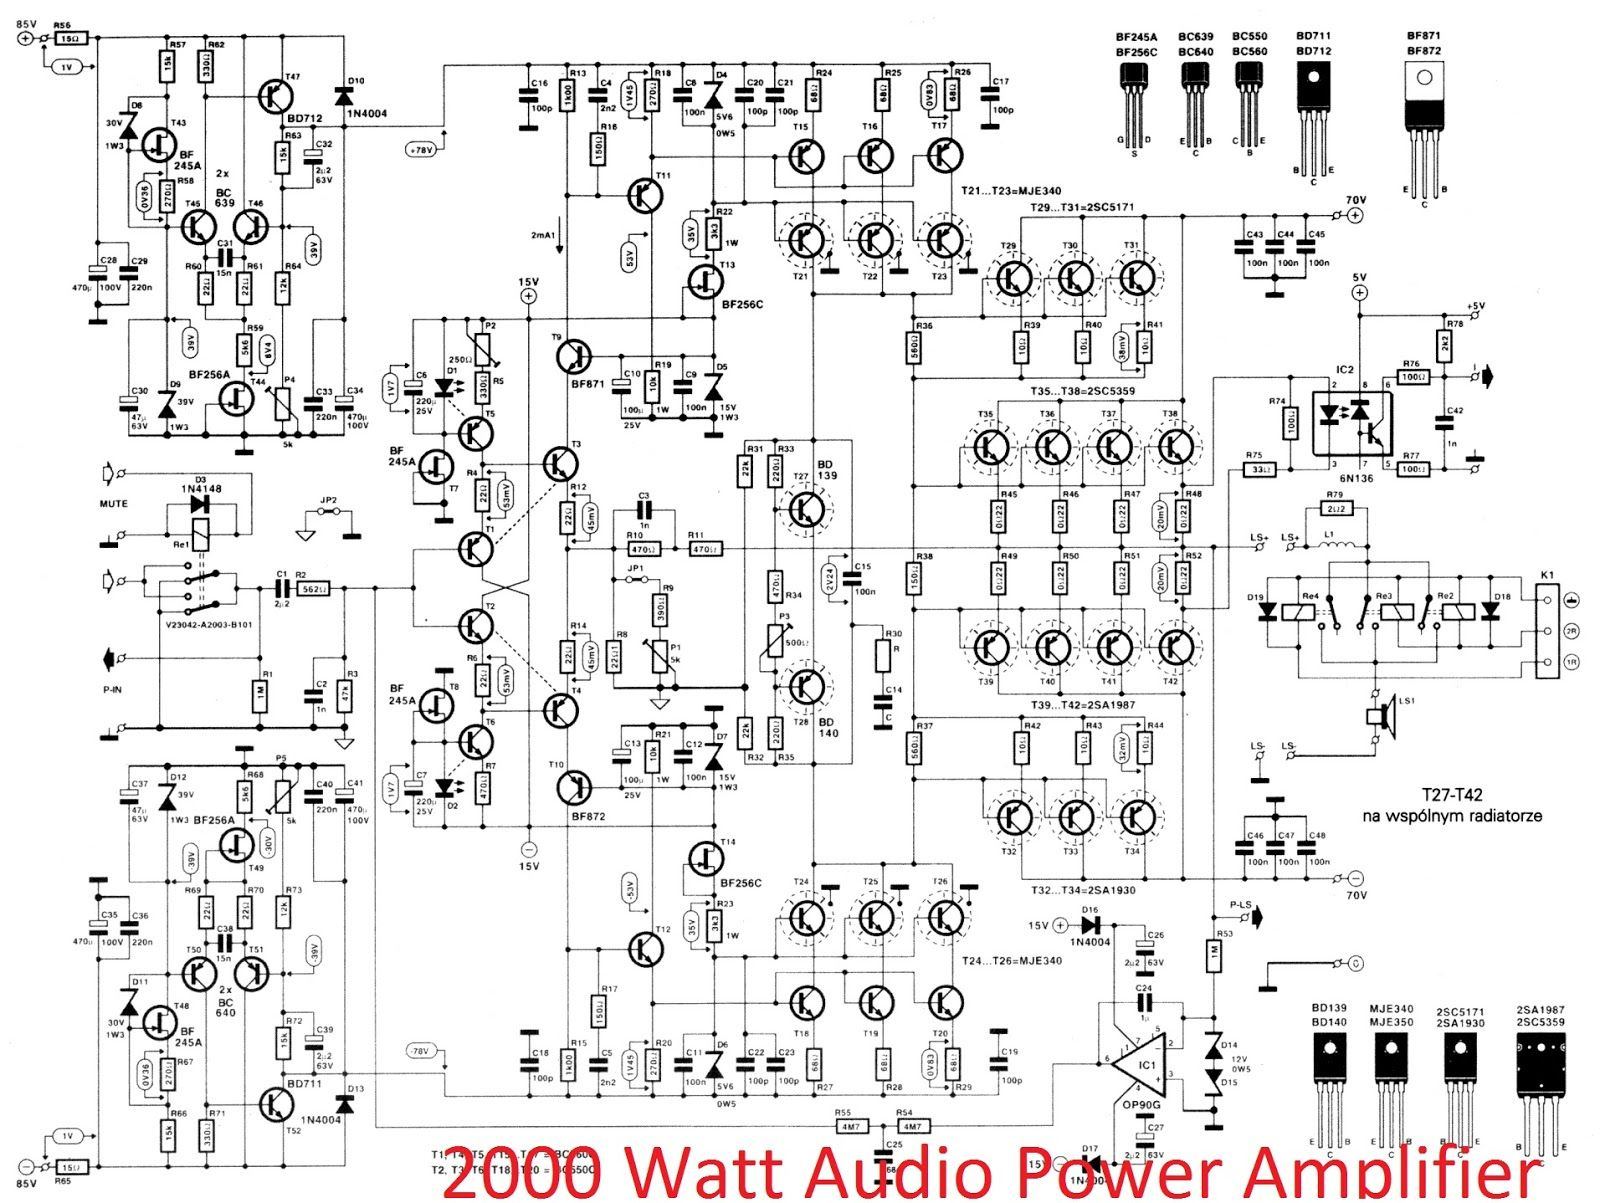 2000w high power amplifier 2sc5359 2sa1987 in 2018 hubby project rh pinterest com